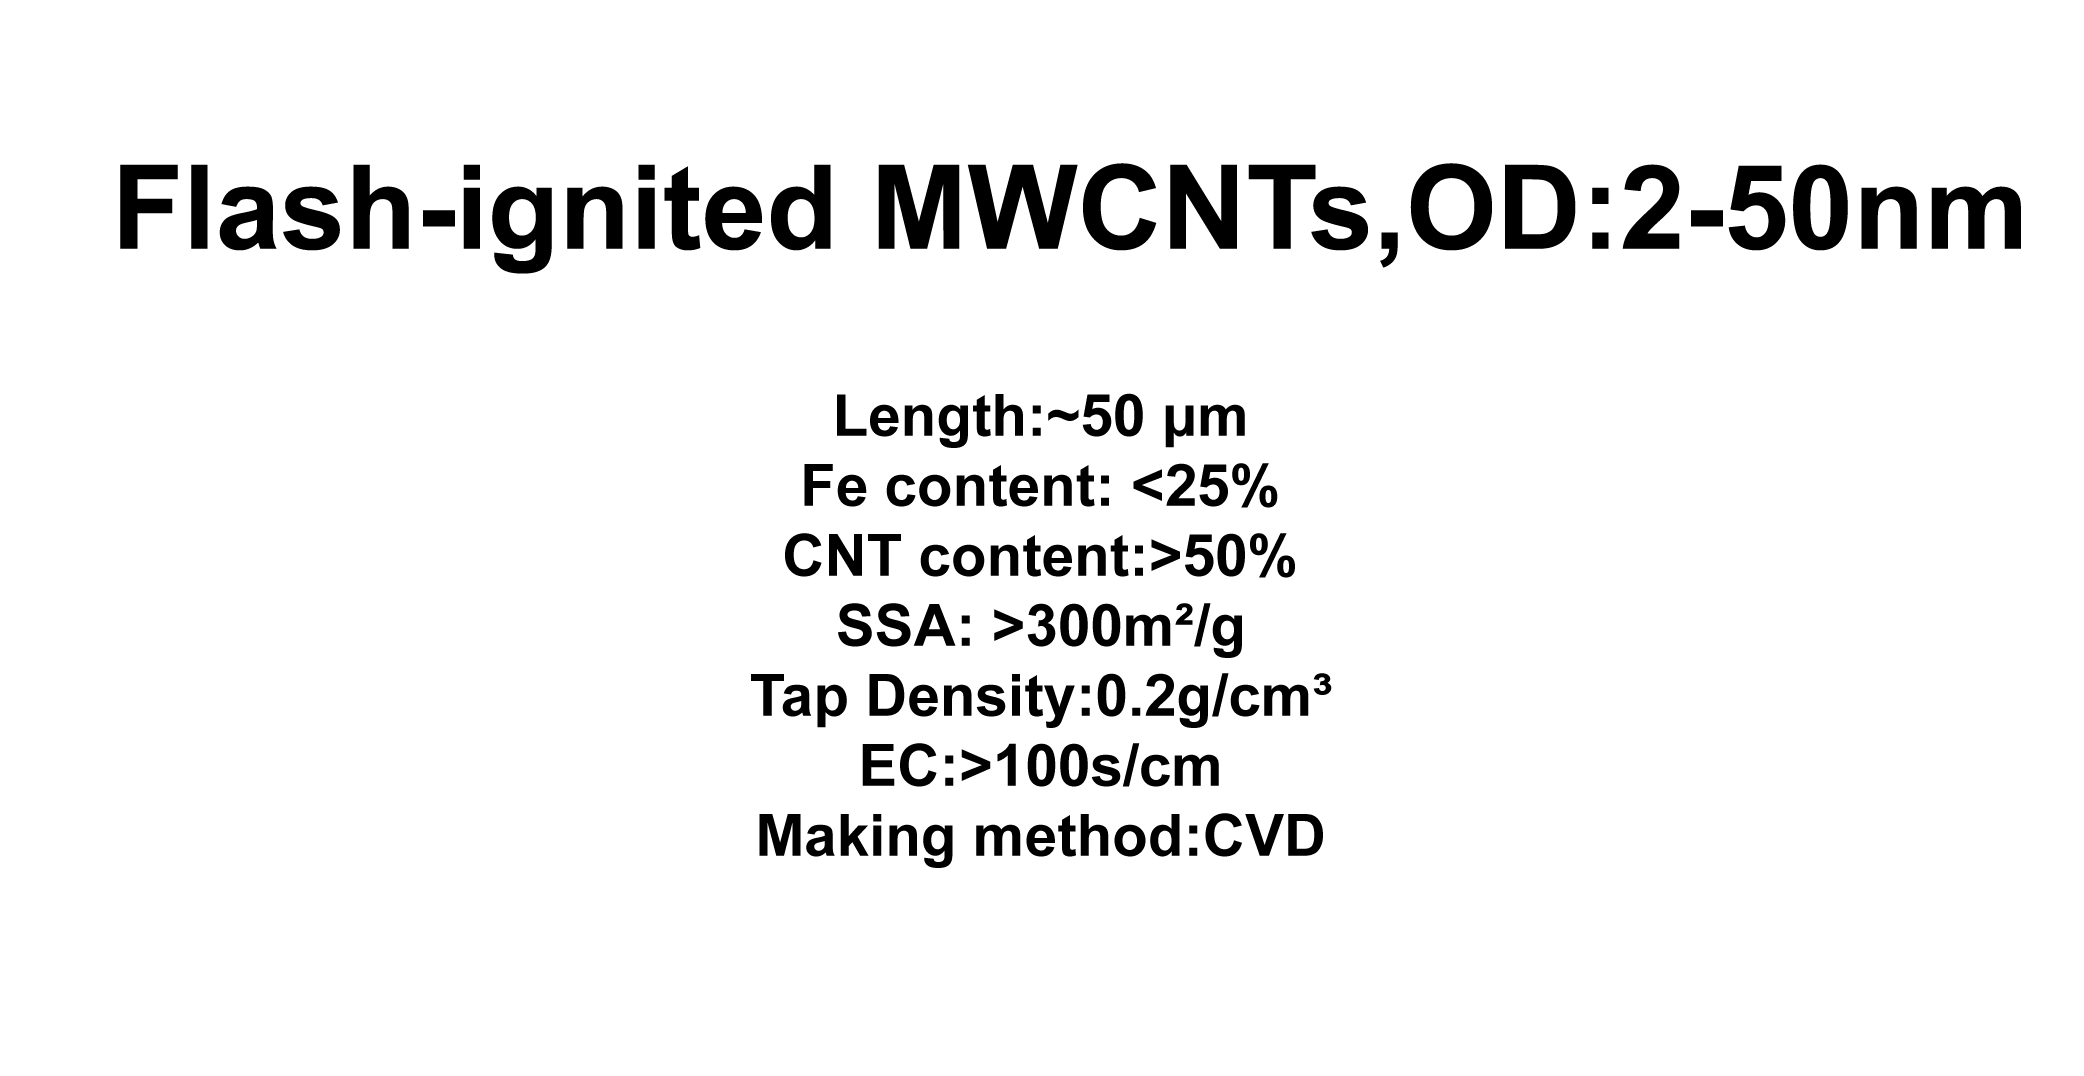 Flash-ignited MWCNTs (TNFIM)